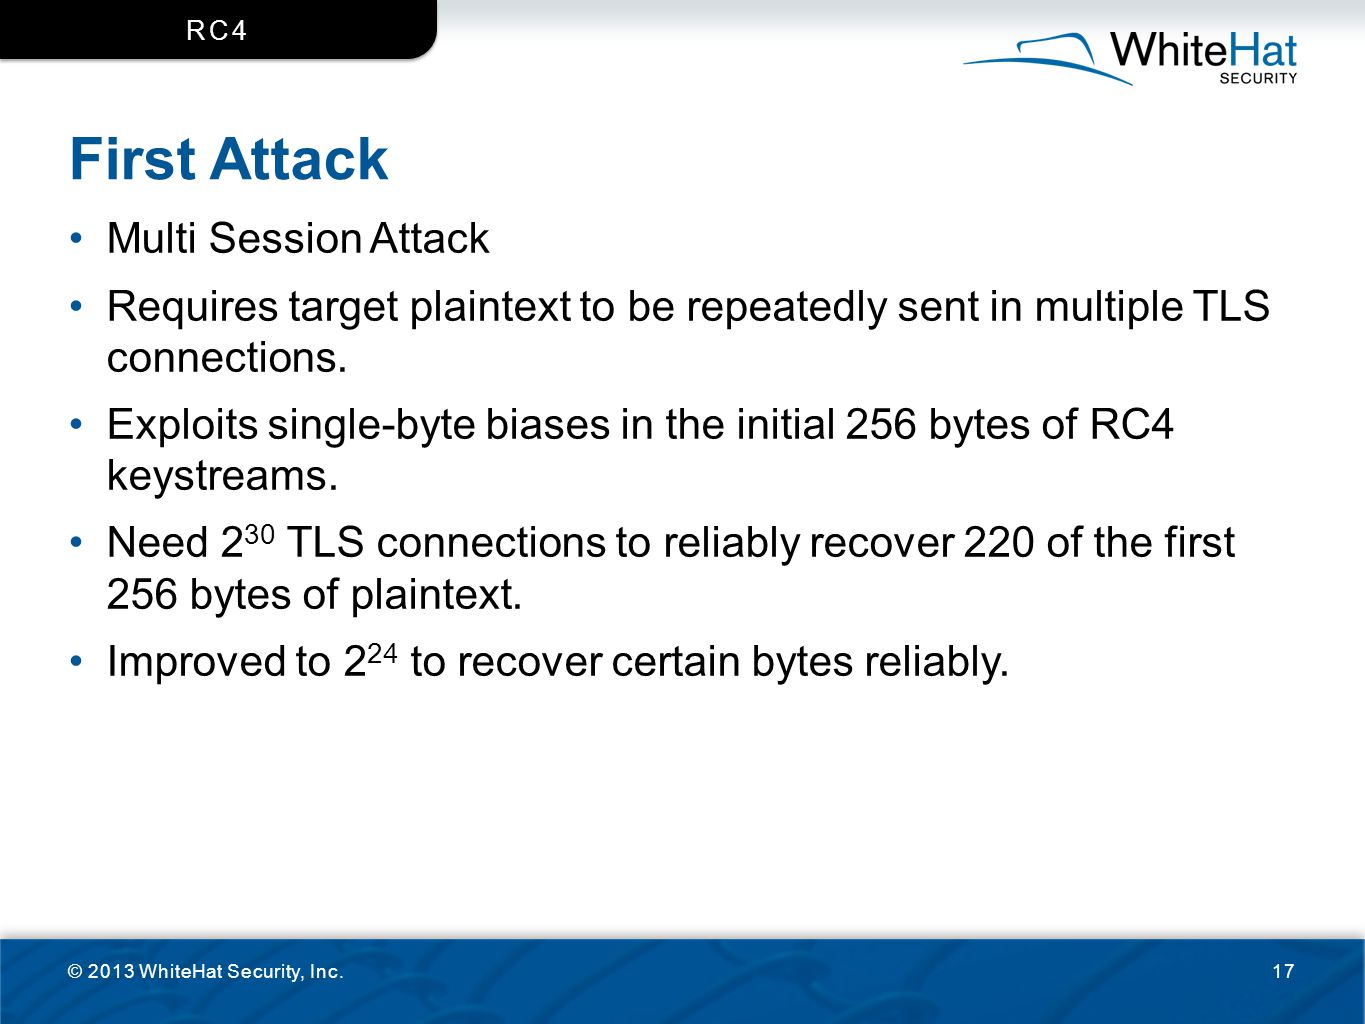 First Attack Multi Session Attack Requires target plaintext to be repeatedly sent in multiple TLS connections. Exploits single-byte biases in the init